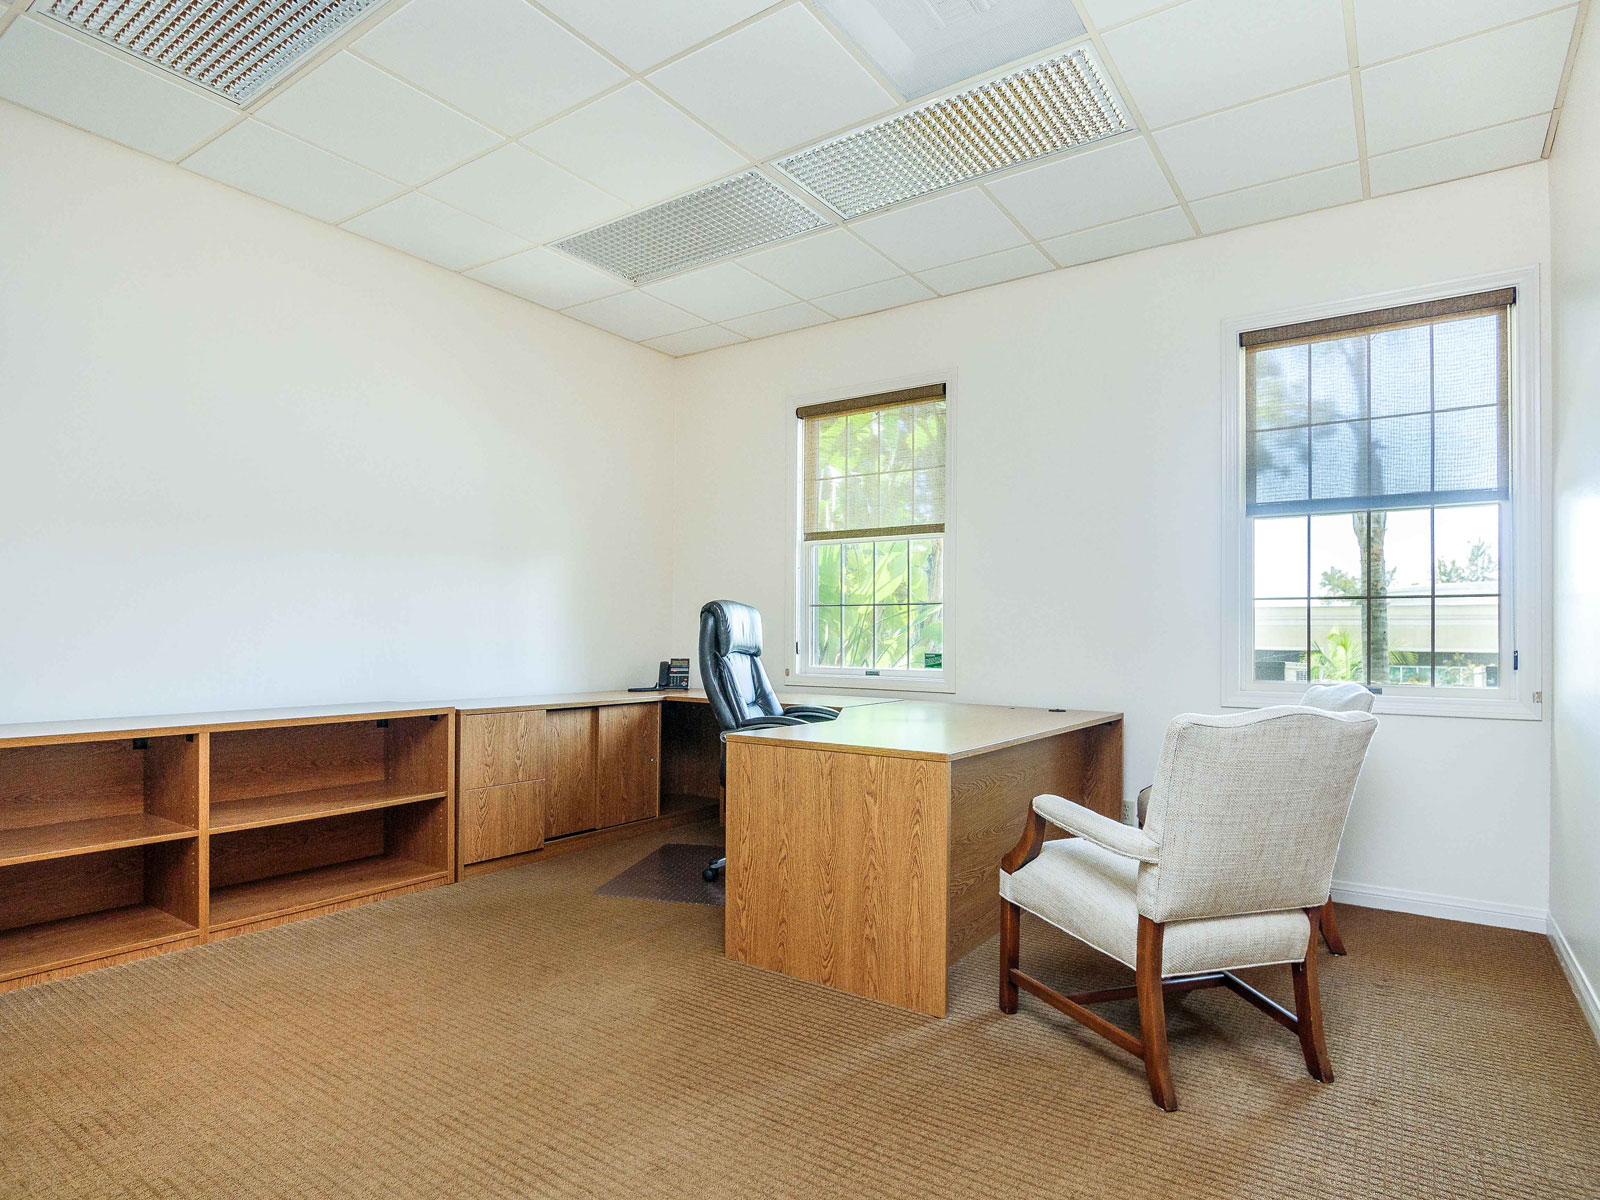 316-s-melrose-vista-ca-executive-office-for-lease-107-2